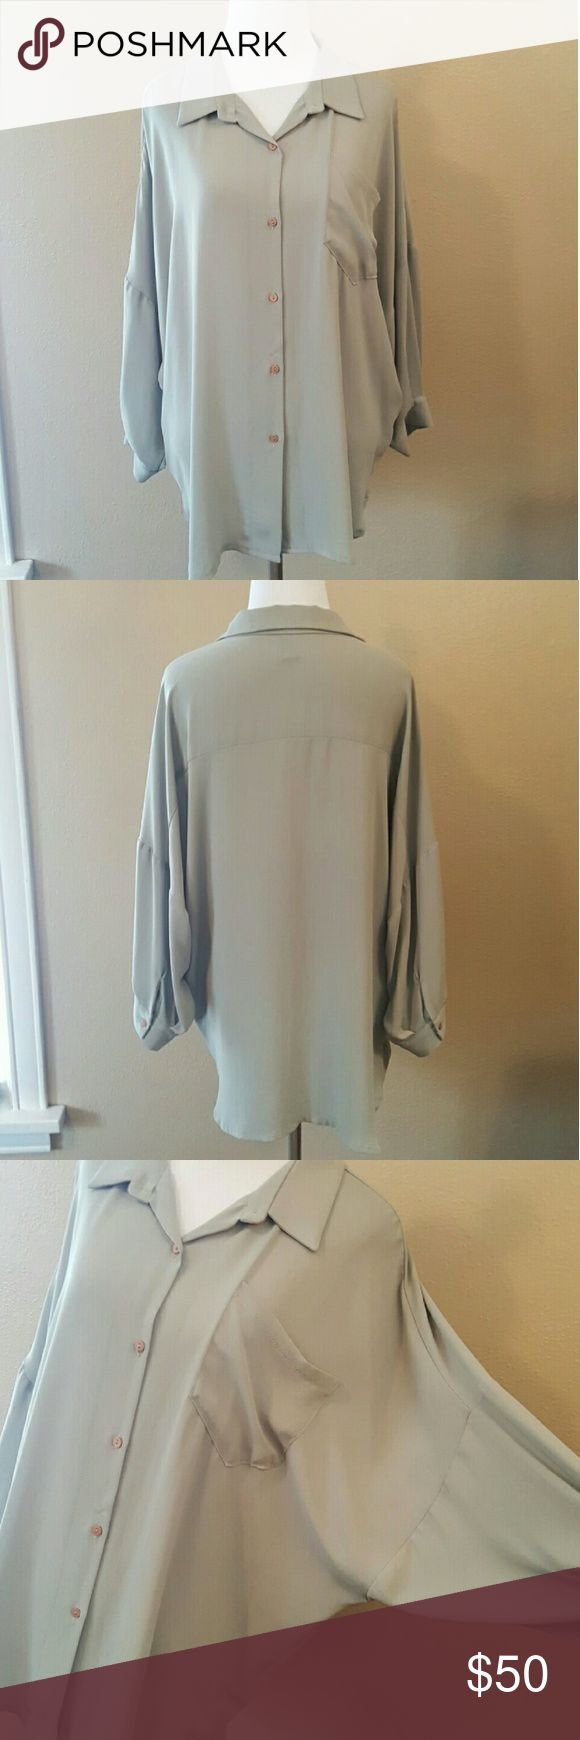 """Stella McCartney blouse *Price is firm* Button down blouse Dusty green batwing top, floppy and oversized, breast pocket  Tags missing Approximately size medium 28"""" long. 22"""" sleeve. 26"""" batwing bust. 22"""" waist. 20.5"""" hips.  Excellent condition  Material unknown, feels like polyester/blend Authentic Stella McCartney Tops Blouses"""